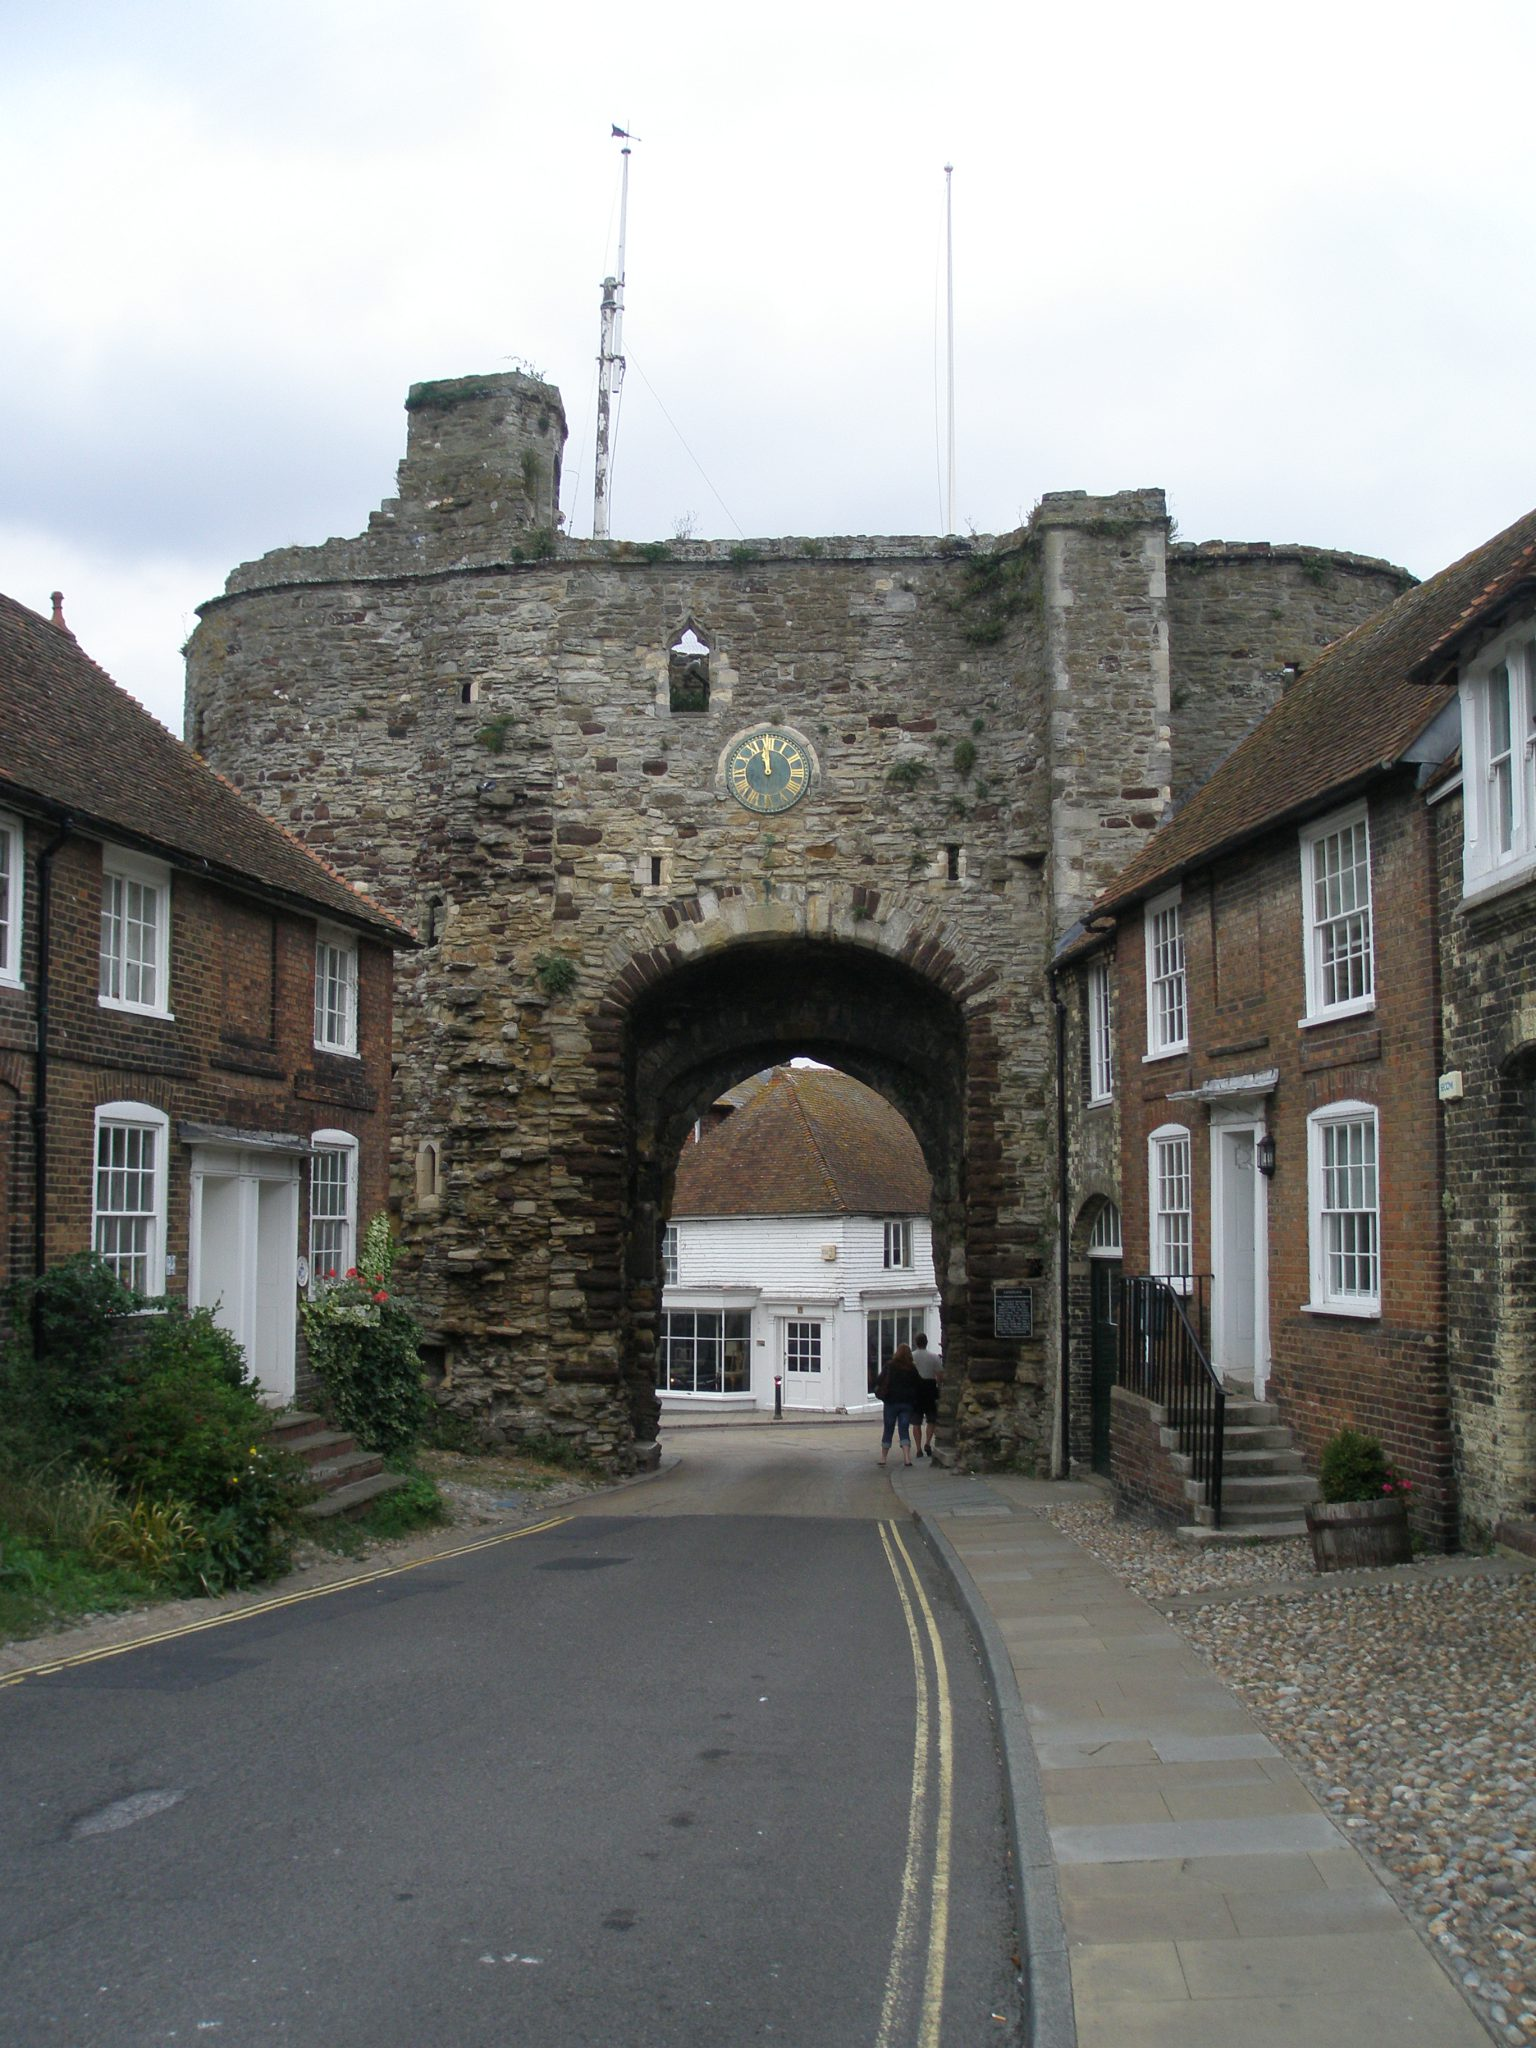 At the northeast corner of Rye is the Landgate, one of four gateways that were built in 1329, when a great wall was erected around the perimeter of the town. The Landgate is the only gate that's survived. Originally, its two towers had pointed roofs, and a pitched roof was over the arch.